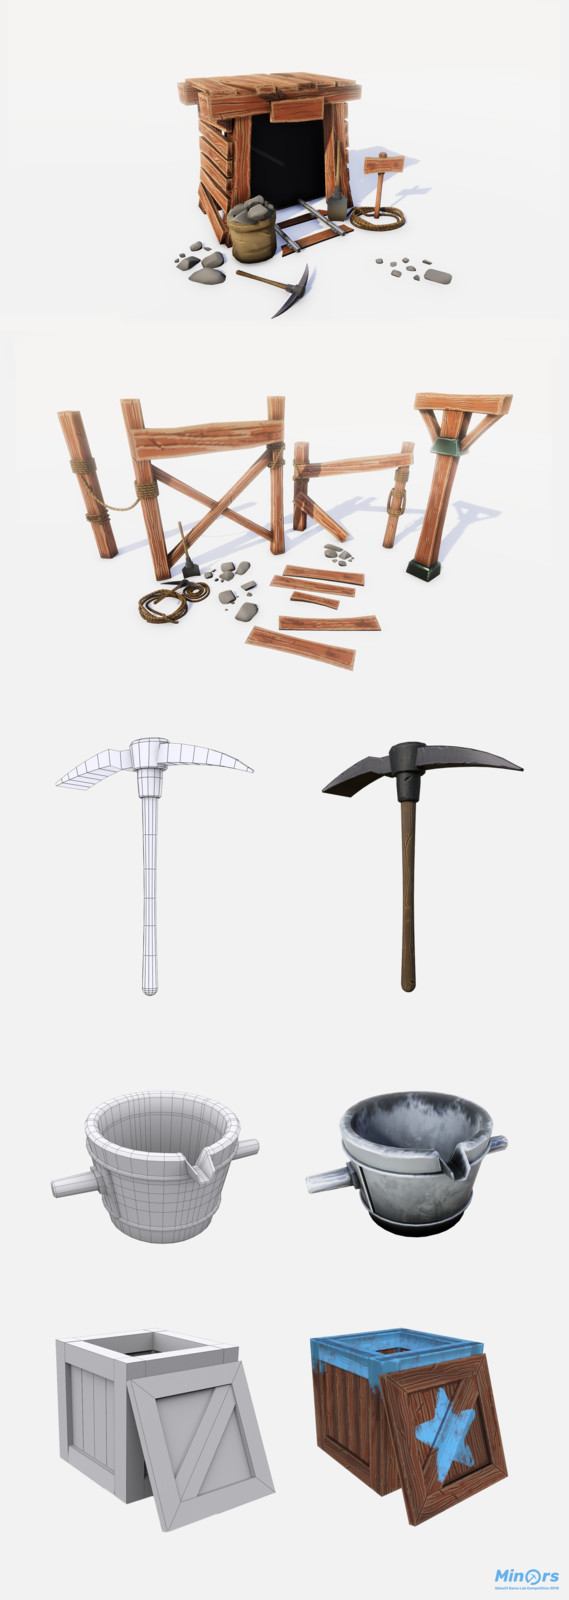 In-Game Props